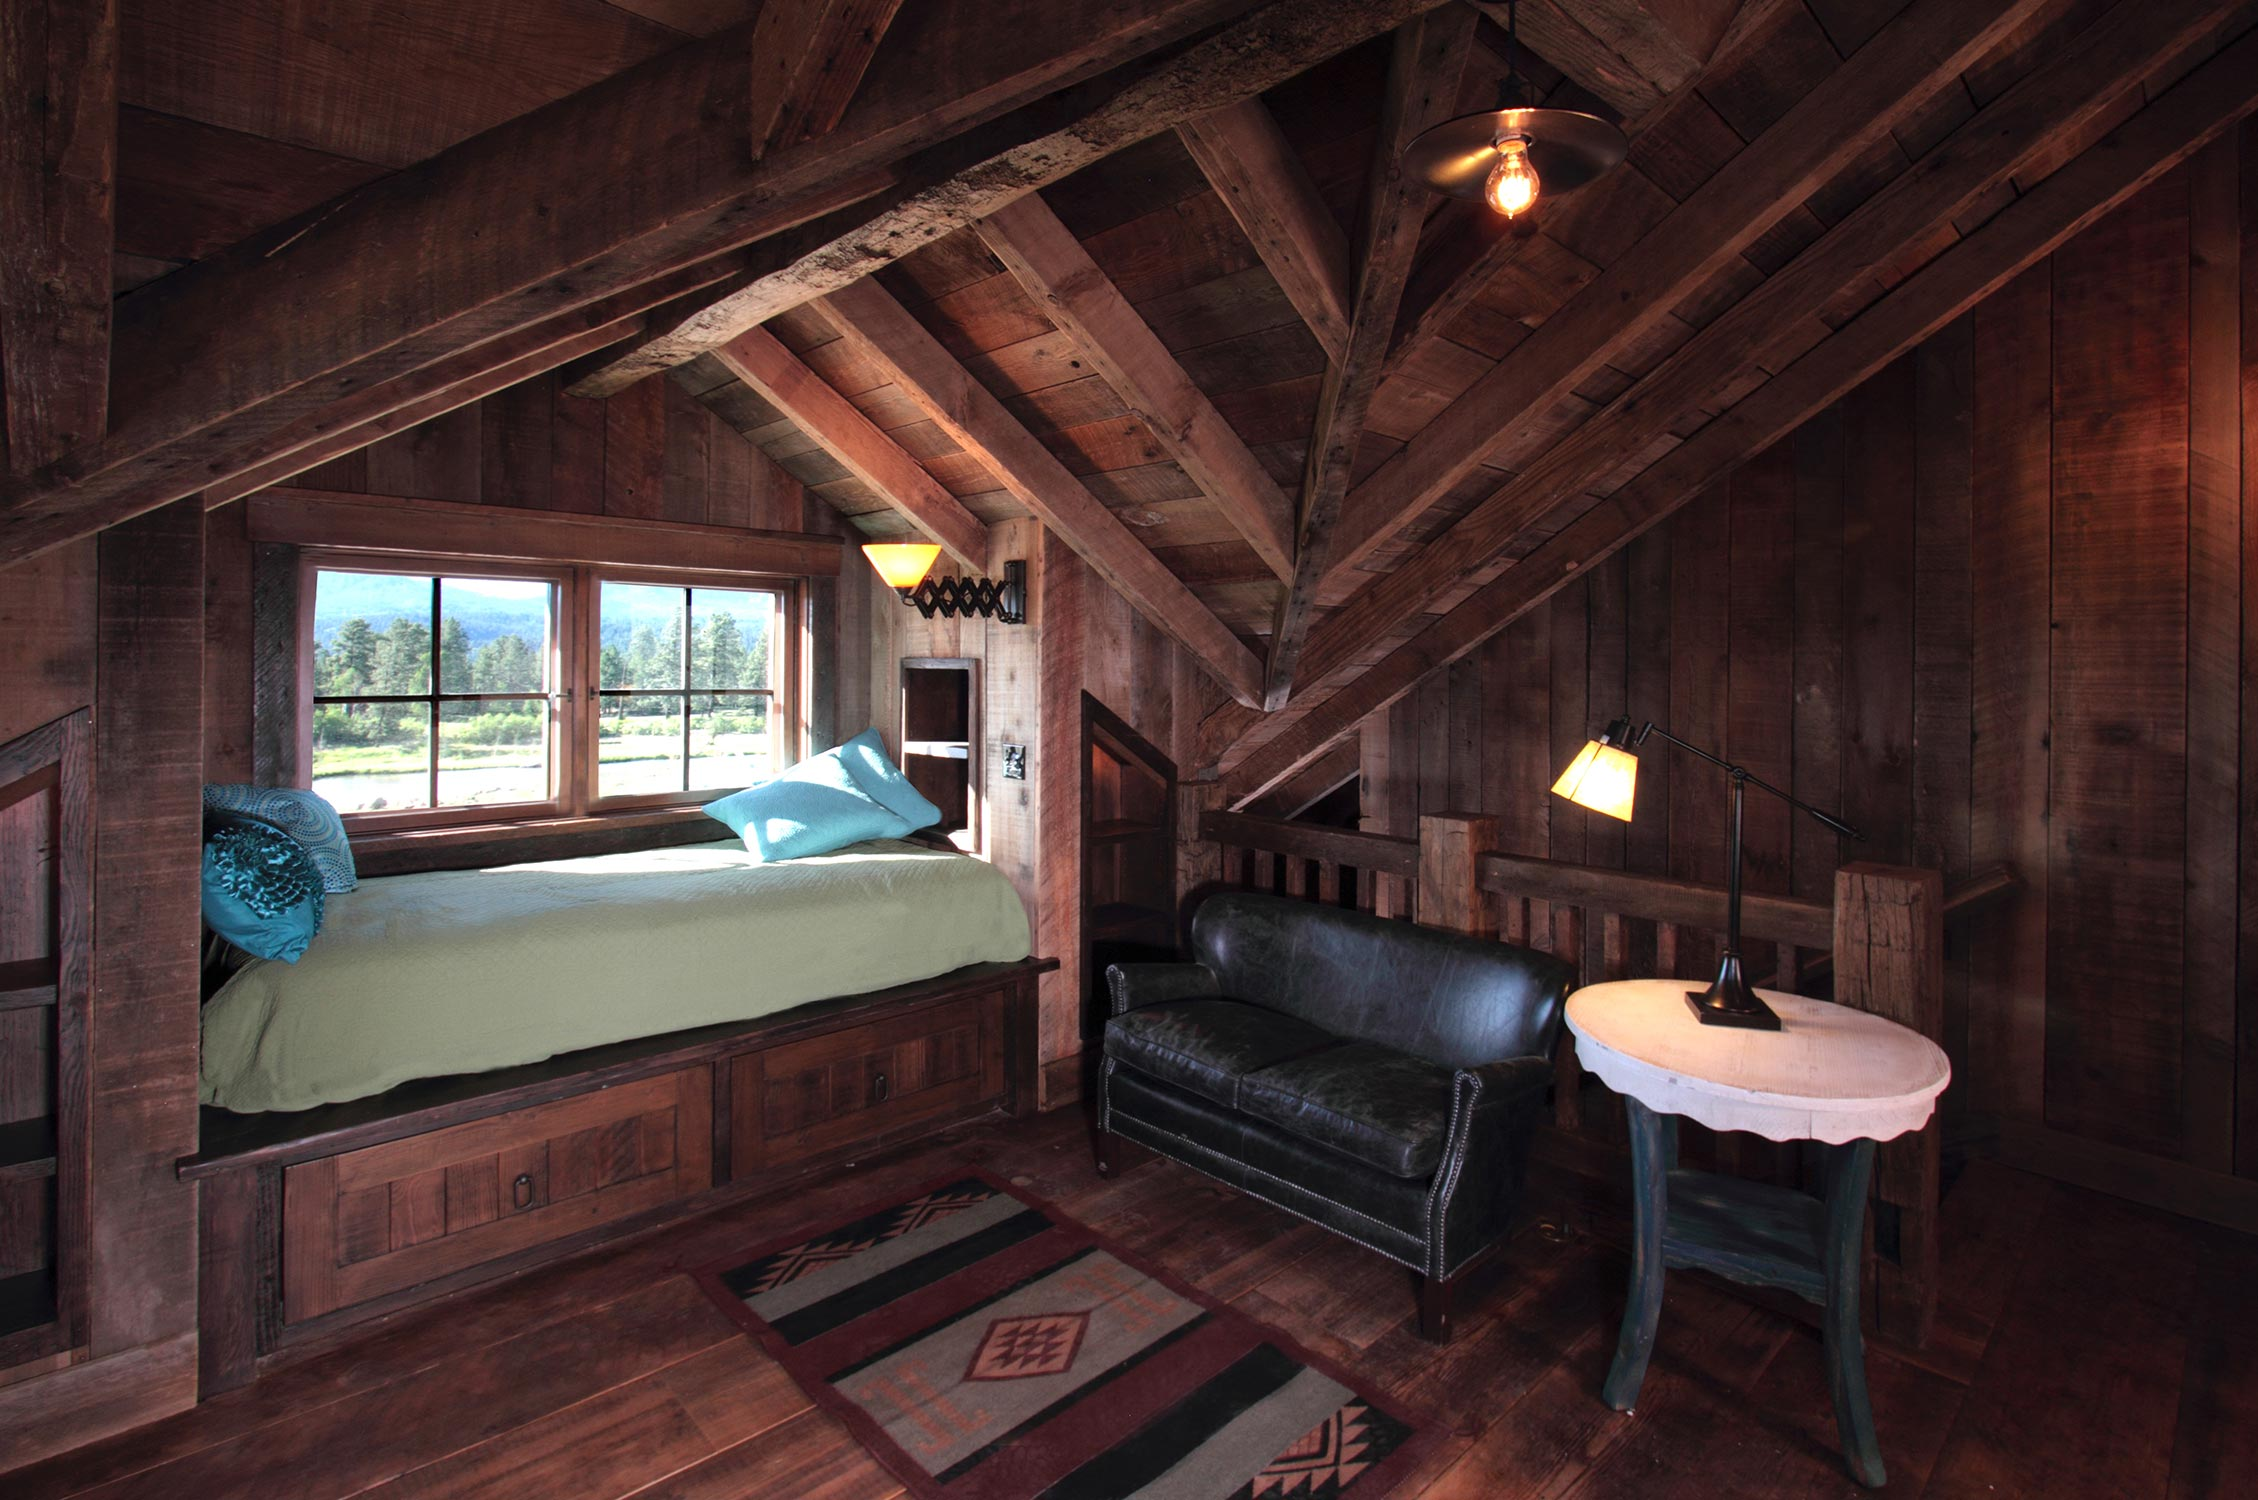 Pearson design group rbmb ranch - Chalet rustique montana pearson design group ...